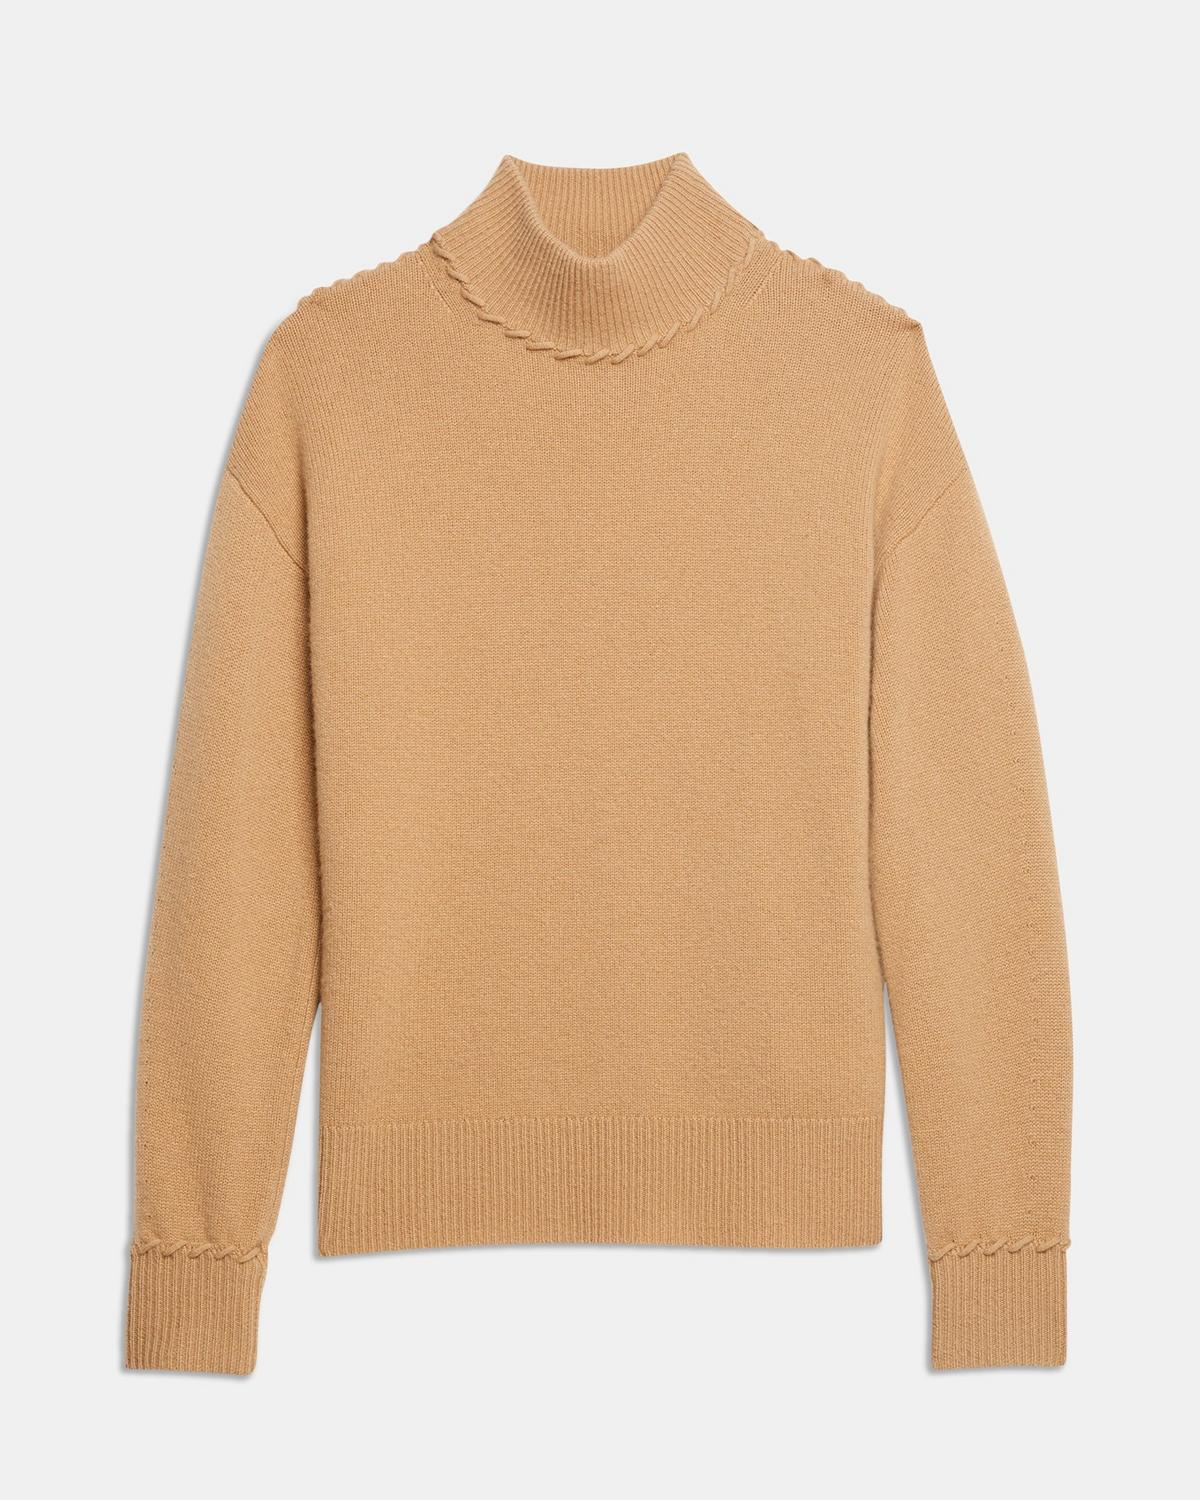 Whipstitch Turtleneck Sweater in Cashmere